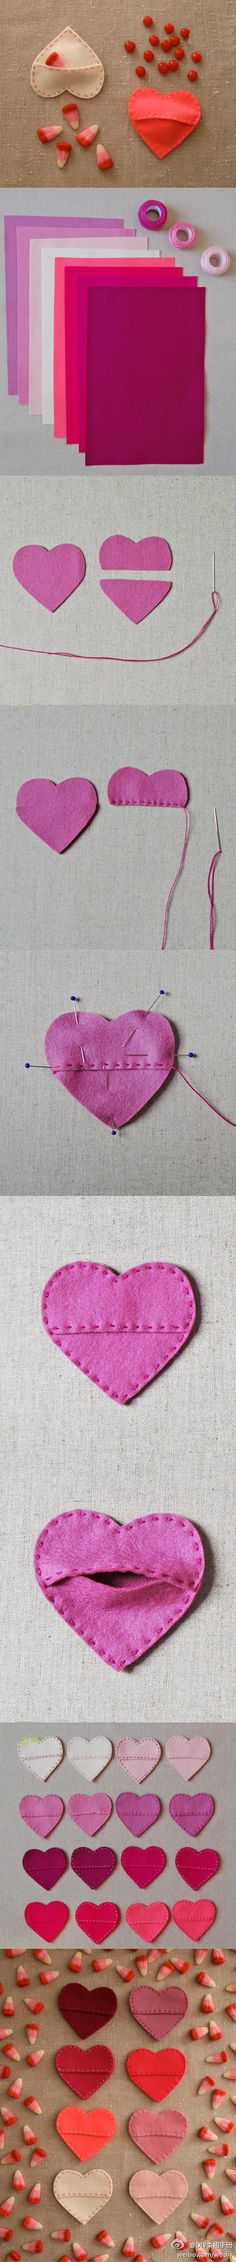 DIY Candy treat bags - Felt Candy Hearts by Molly's Sketchbook via purlbee